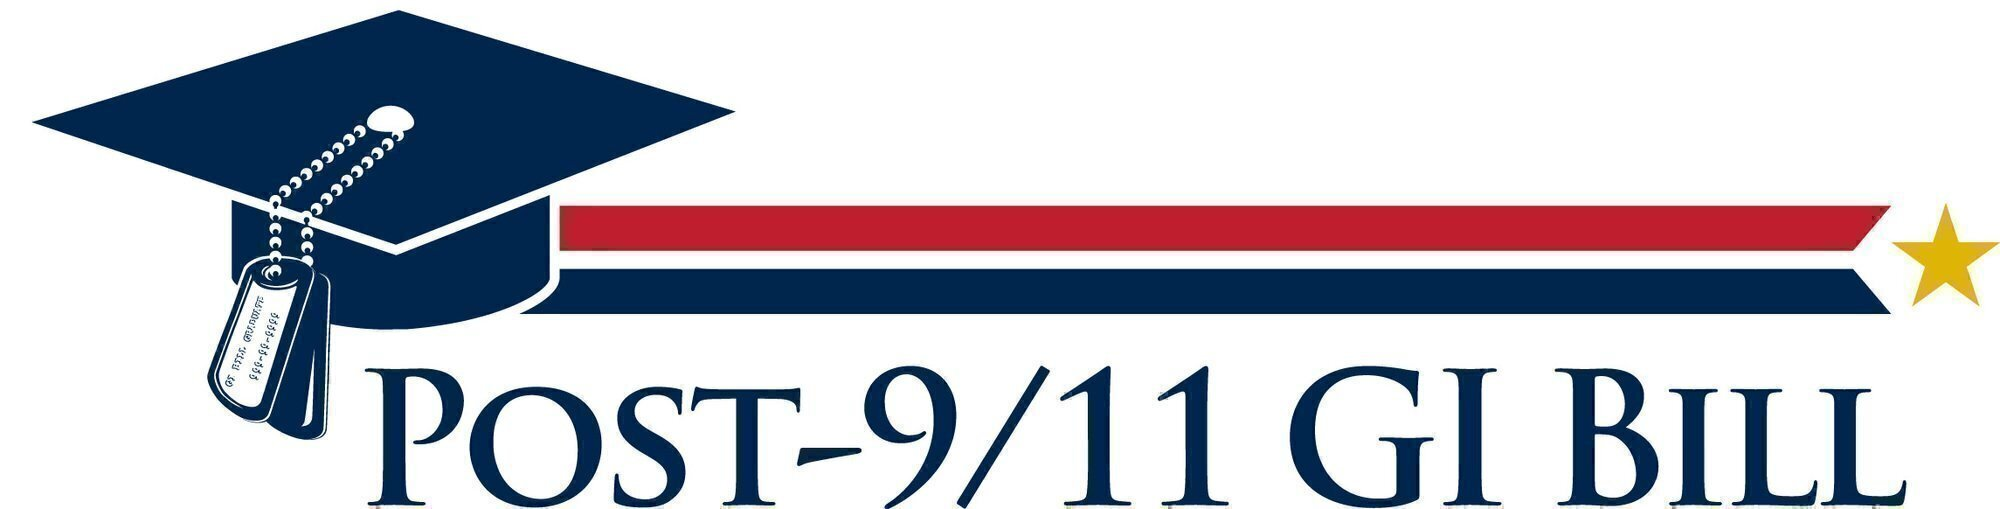 2018 Post 9/11 GI Bill changes